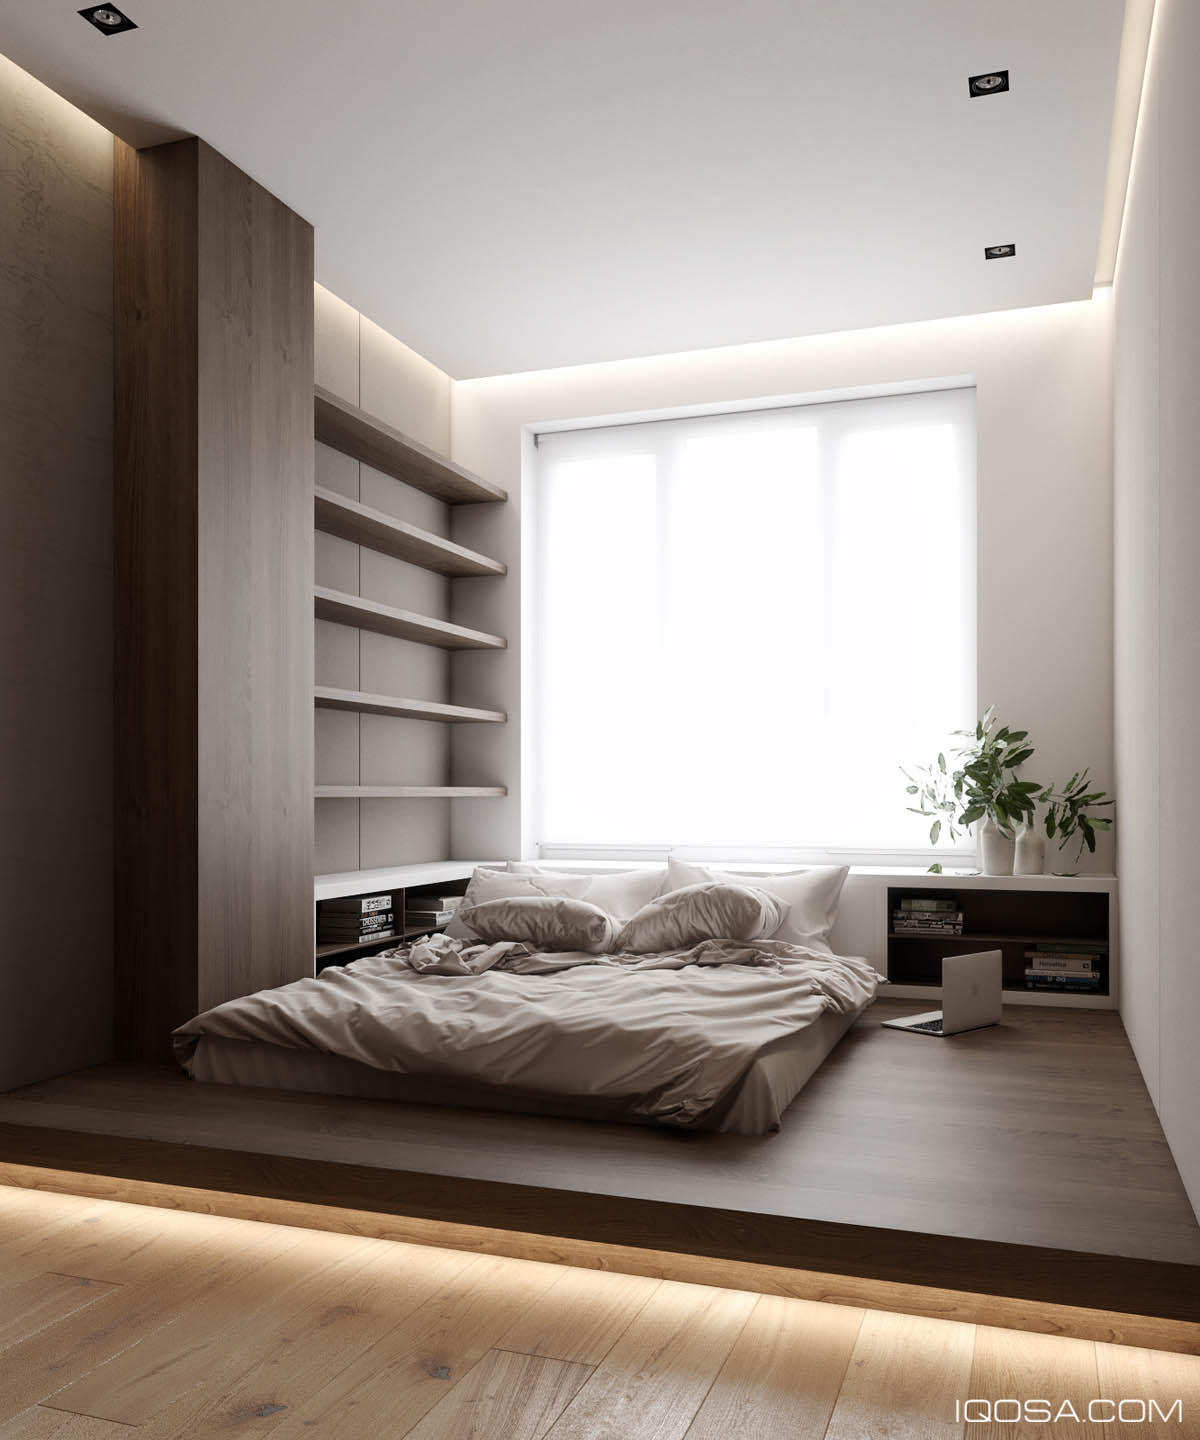 Home Design Under 60 Square Meters: 3 Examples That